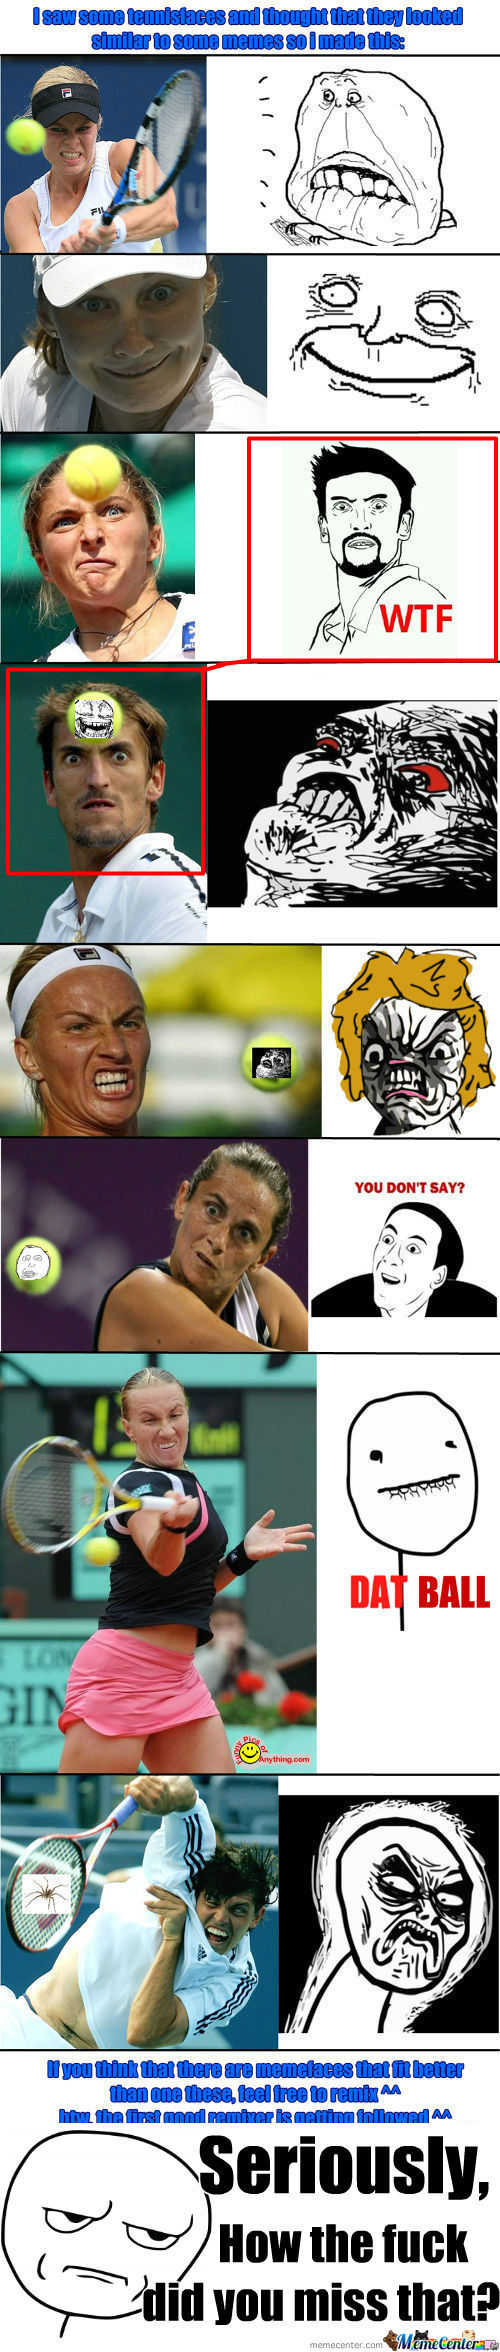 [RMX] Sometimes I Think We Should Just Stop And Appreciate All The Faces Tennis Has To Offer Us.